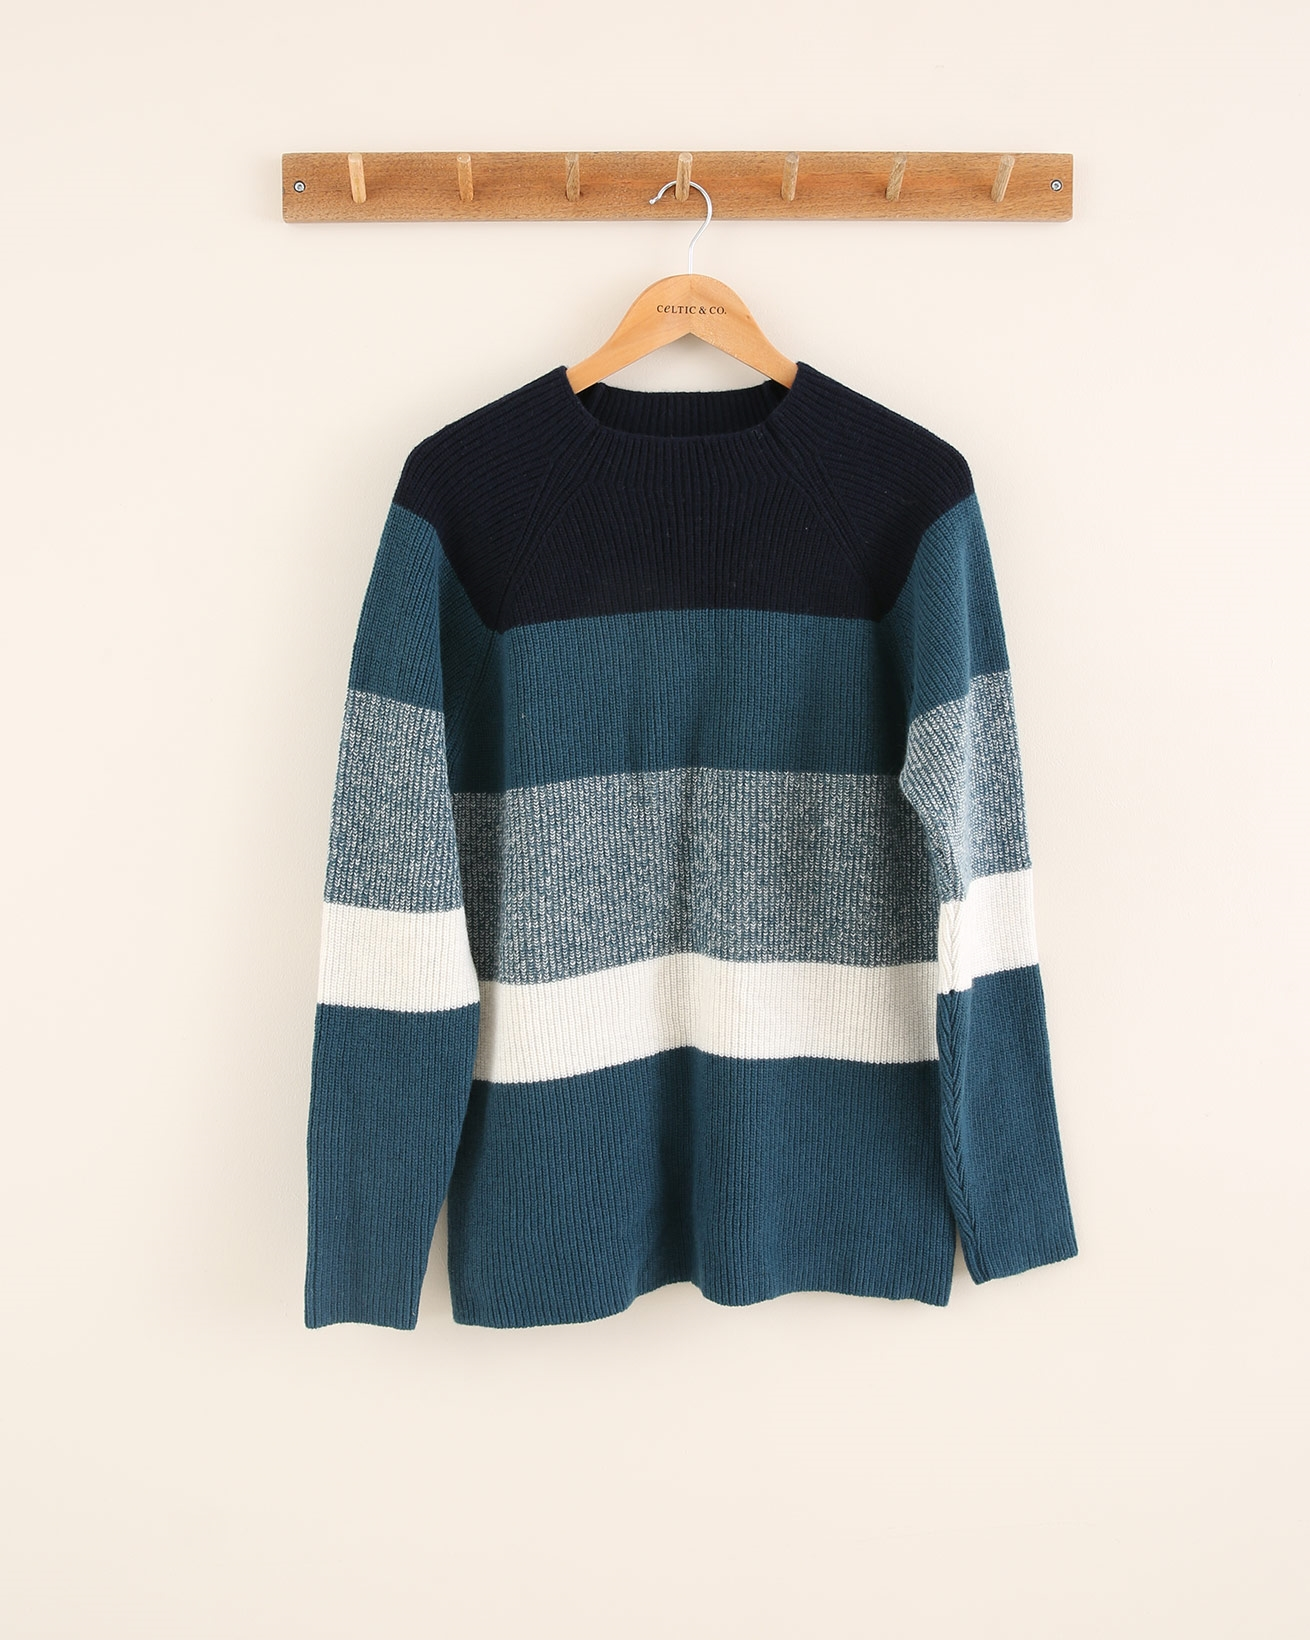 Colourblock Funnel Neck Jumper - Size Small - Icelandic Blue Mix - 1785